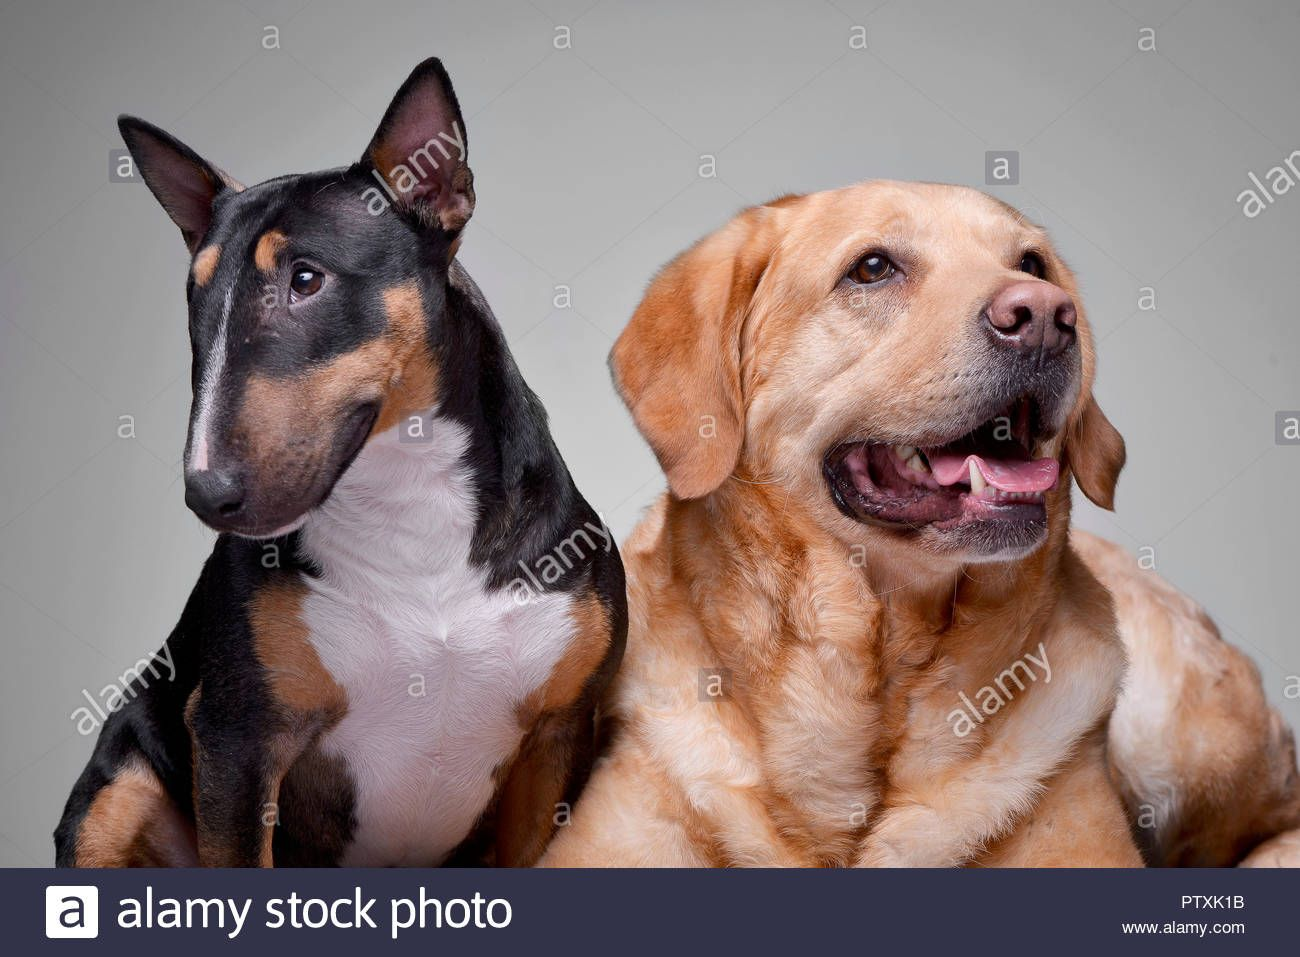 Studio Geschossen Von Einem Entzuckenden Bull Terrier Und Golden Retriever Welpen 21 26 Monate 1 Hunde In Der In 2020 Terrier Mix Terrier Mix Breeds Golden Retriever